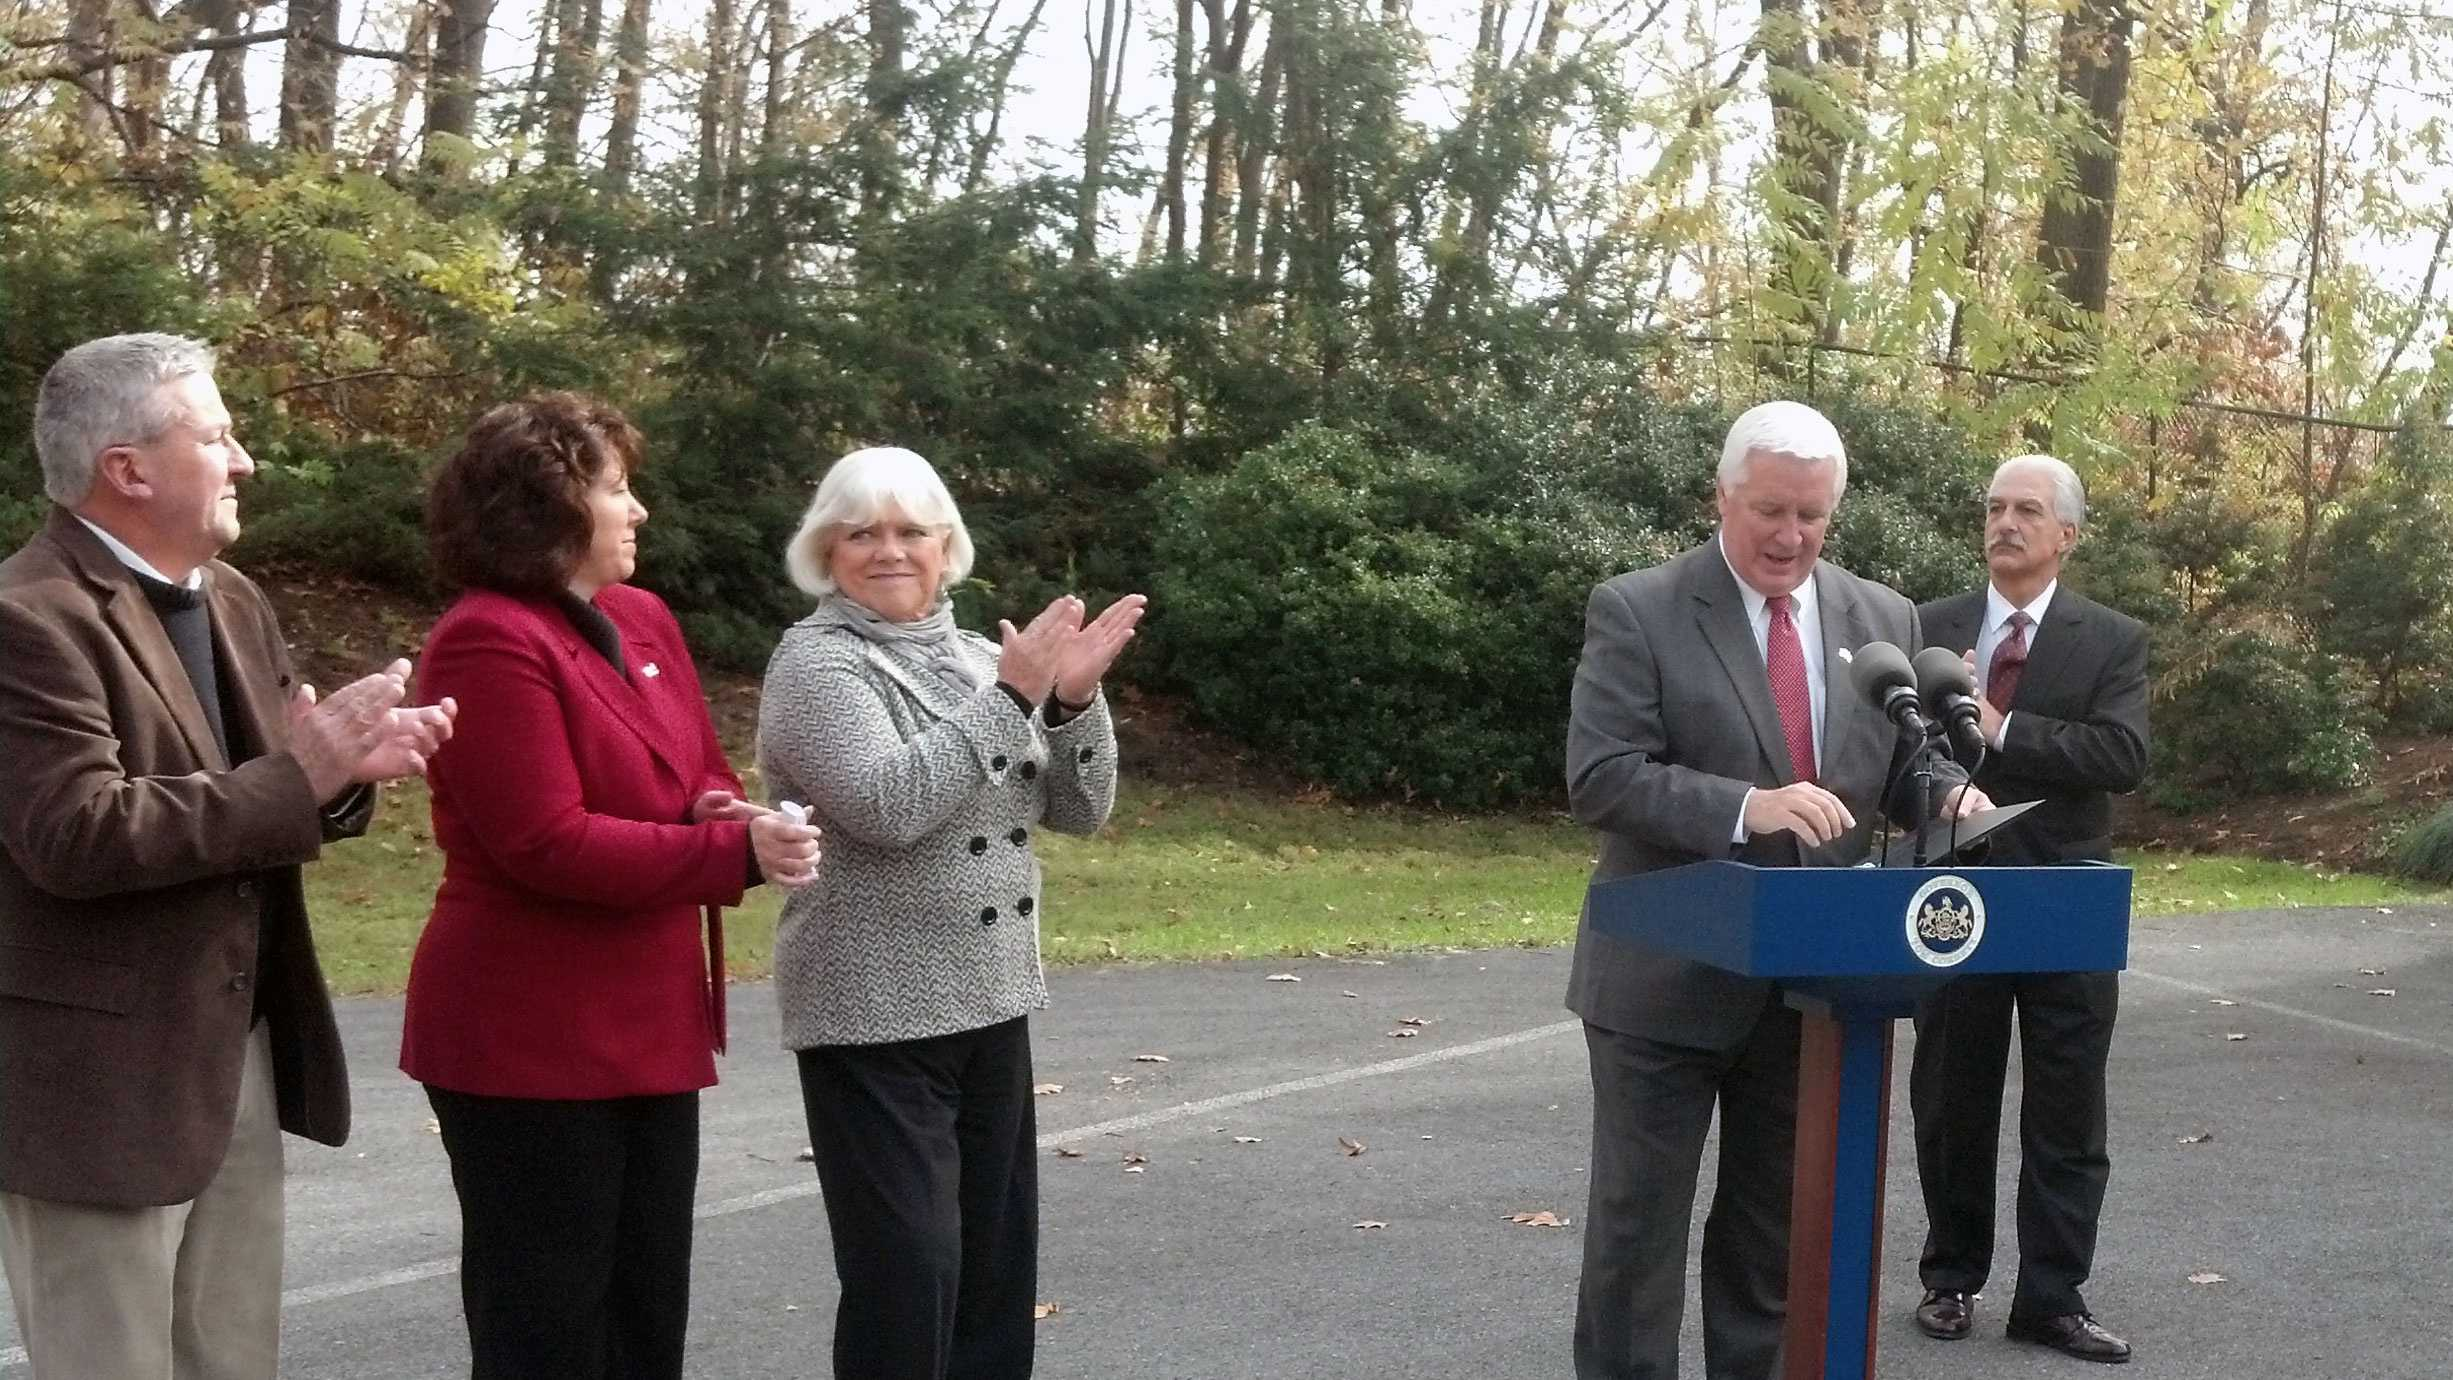 Gov. Tom Corbett announces funding for dozens of park projects Tuesday at Coleman Memorial Park in Lebanon.